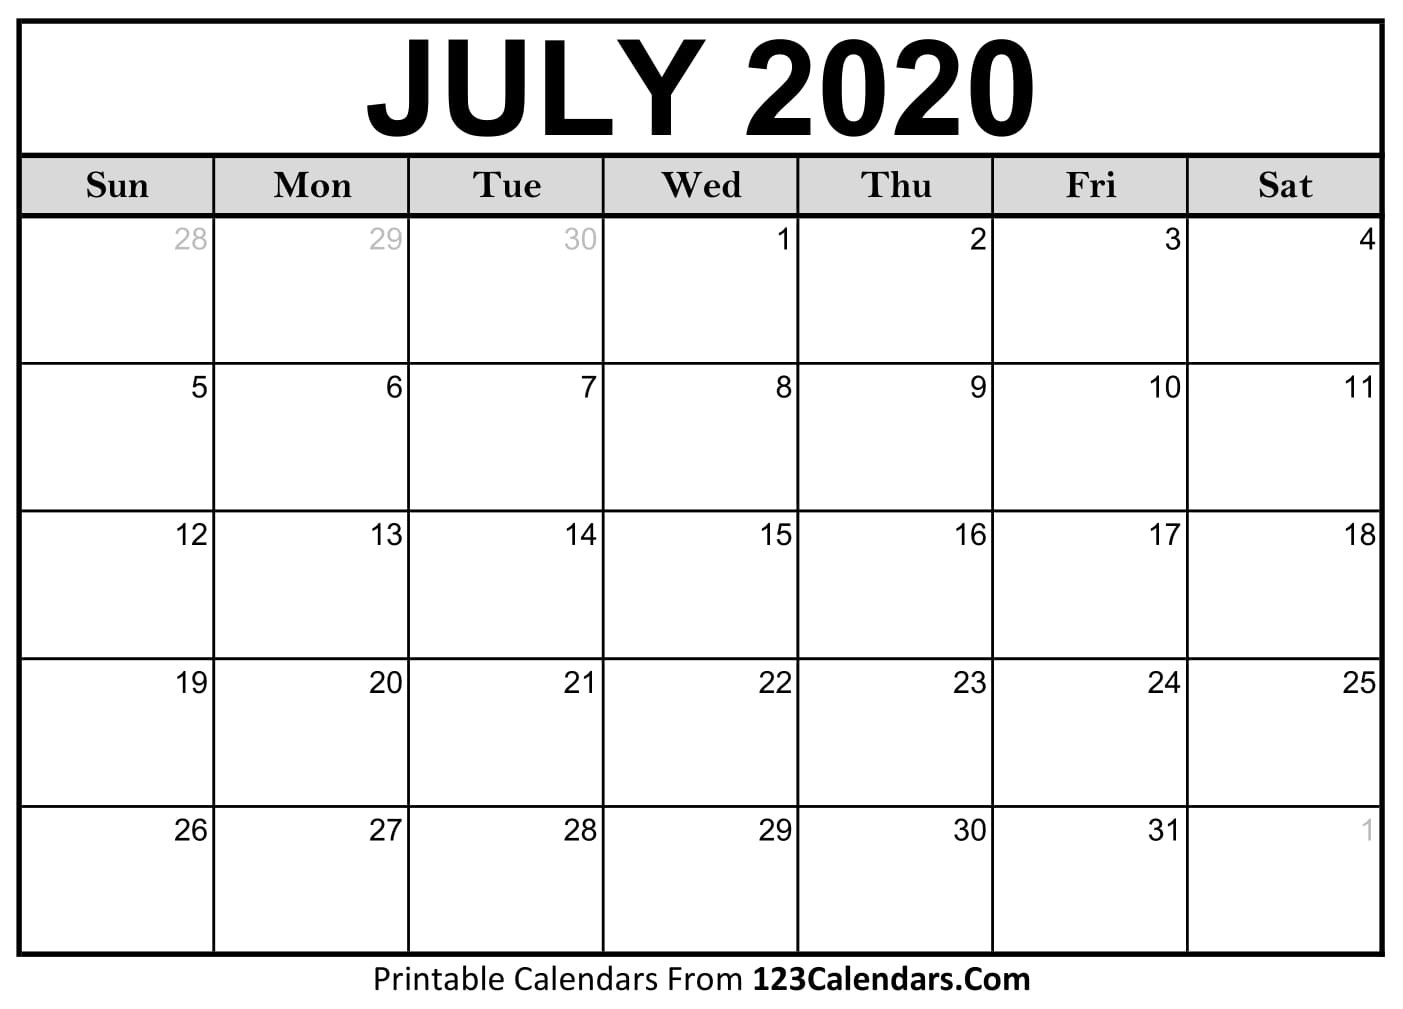 July 2020 Printable Calendar | 123Calendars-Blank Monthly Calendar Printable July 2020